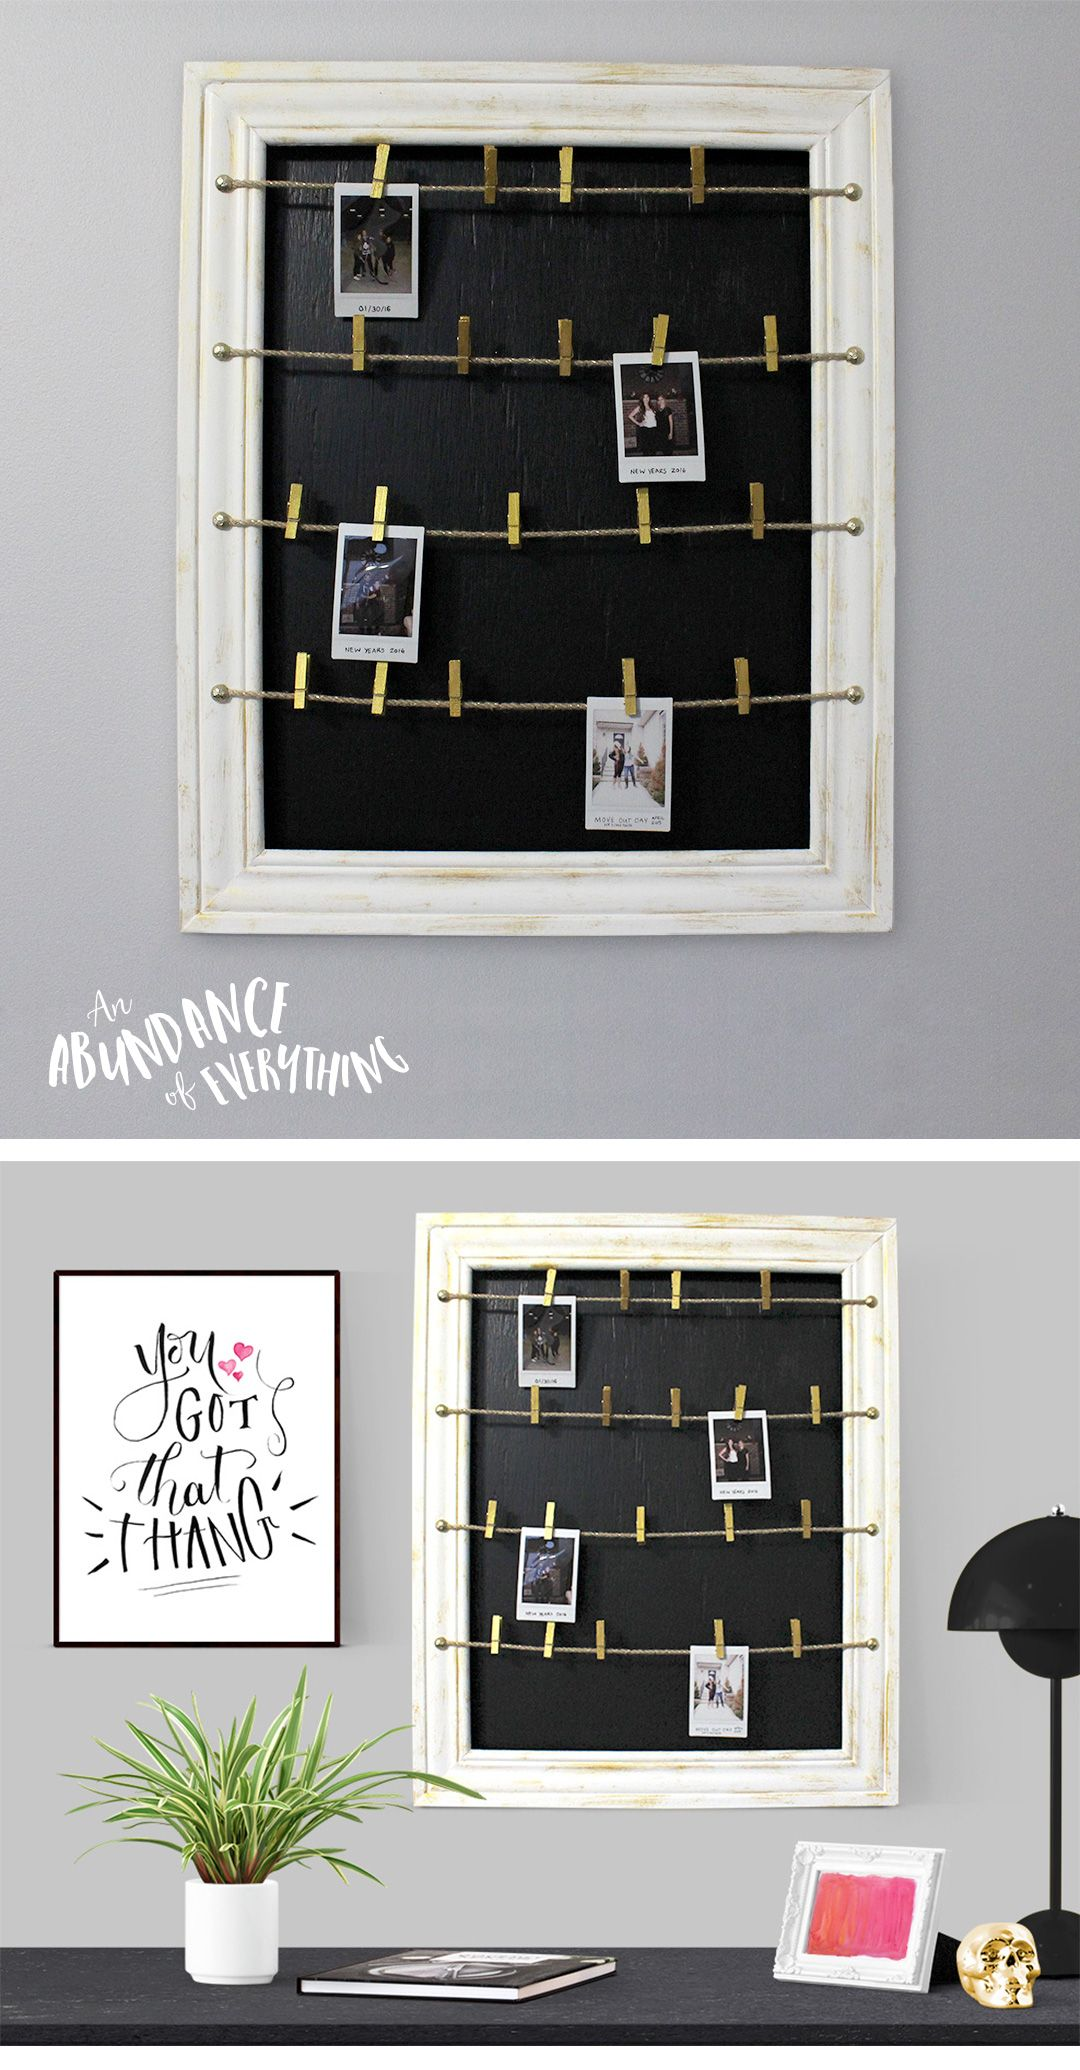 How to make a 3d clothesline polaroid picture frame diy do it yourself clothesline polaroid picture frame abundance of everything solutioingenieria Image collections